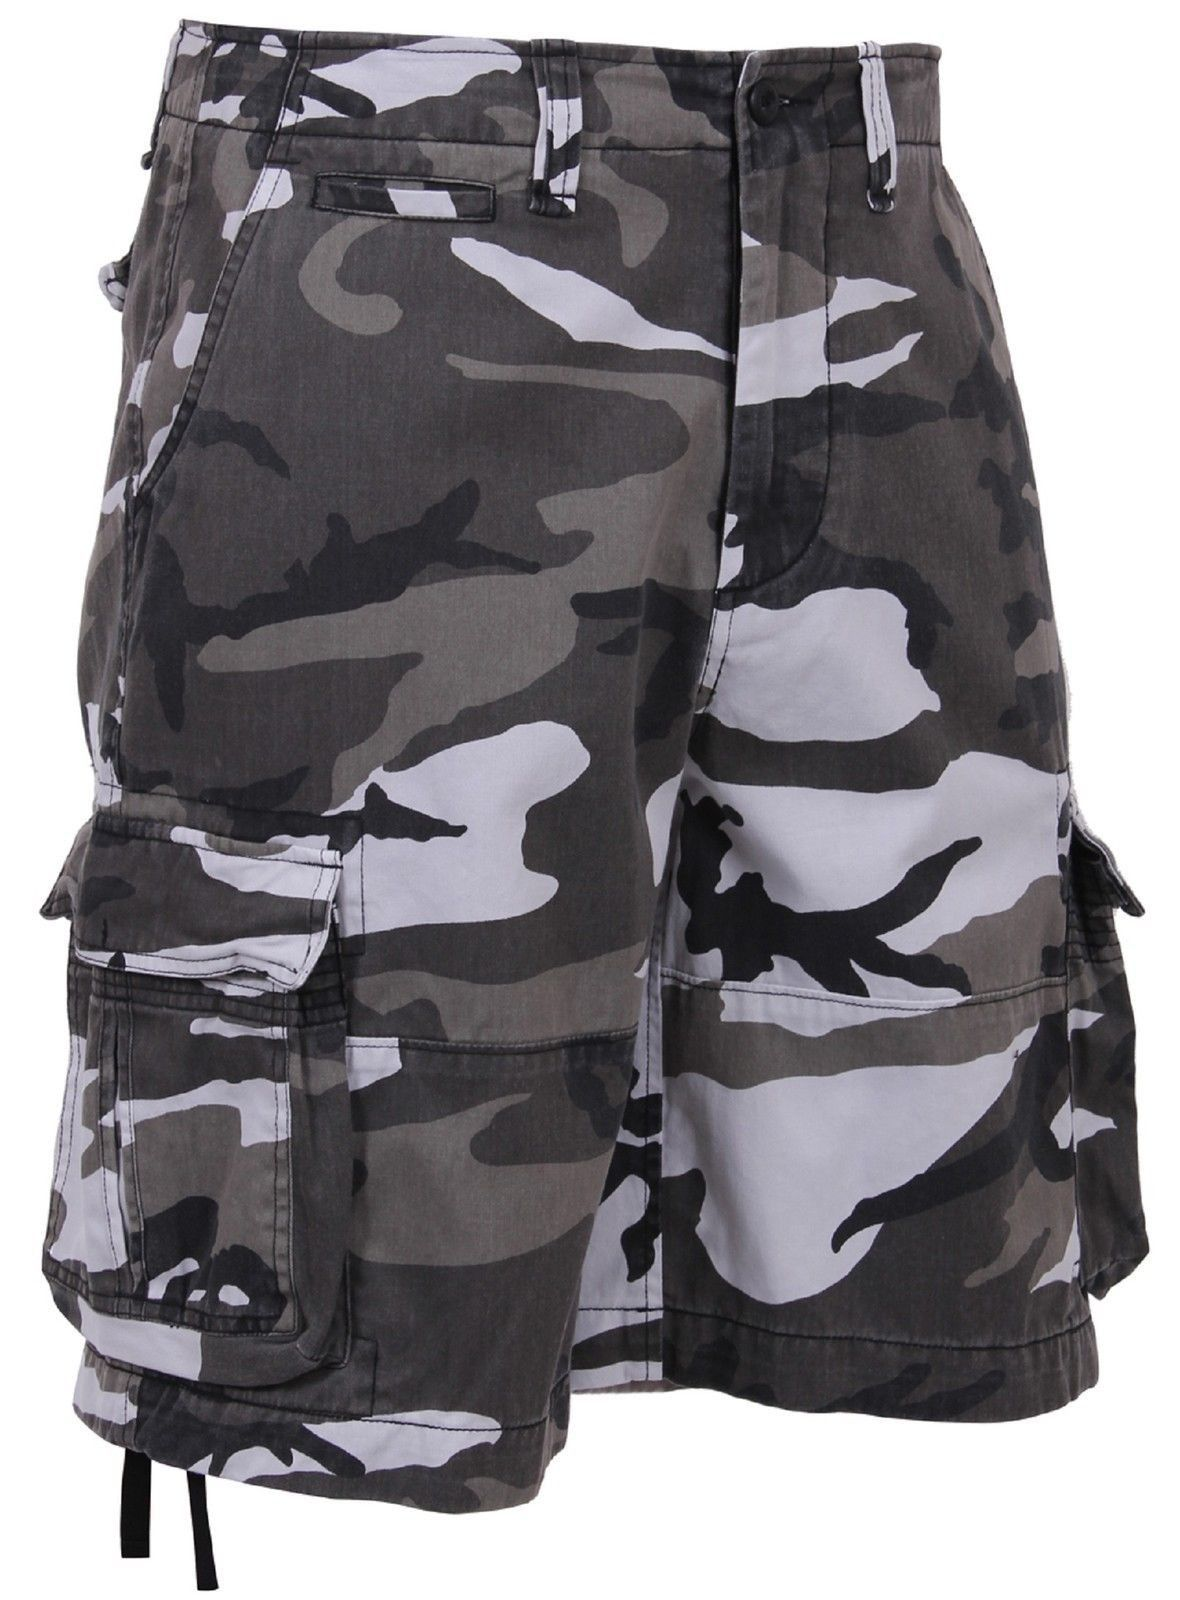 f0115a8805 Men's Vintage City Camouflage Utility Cargo Shorts - Black and White Camo